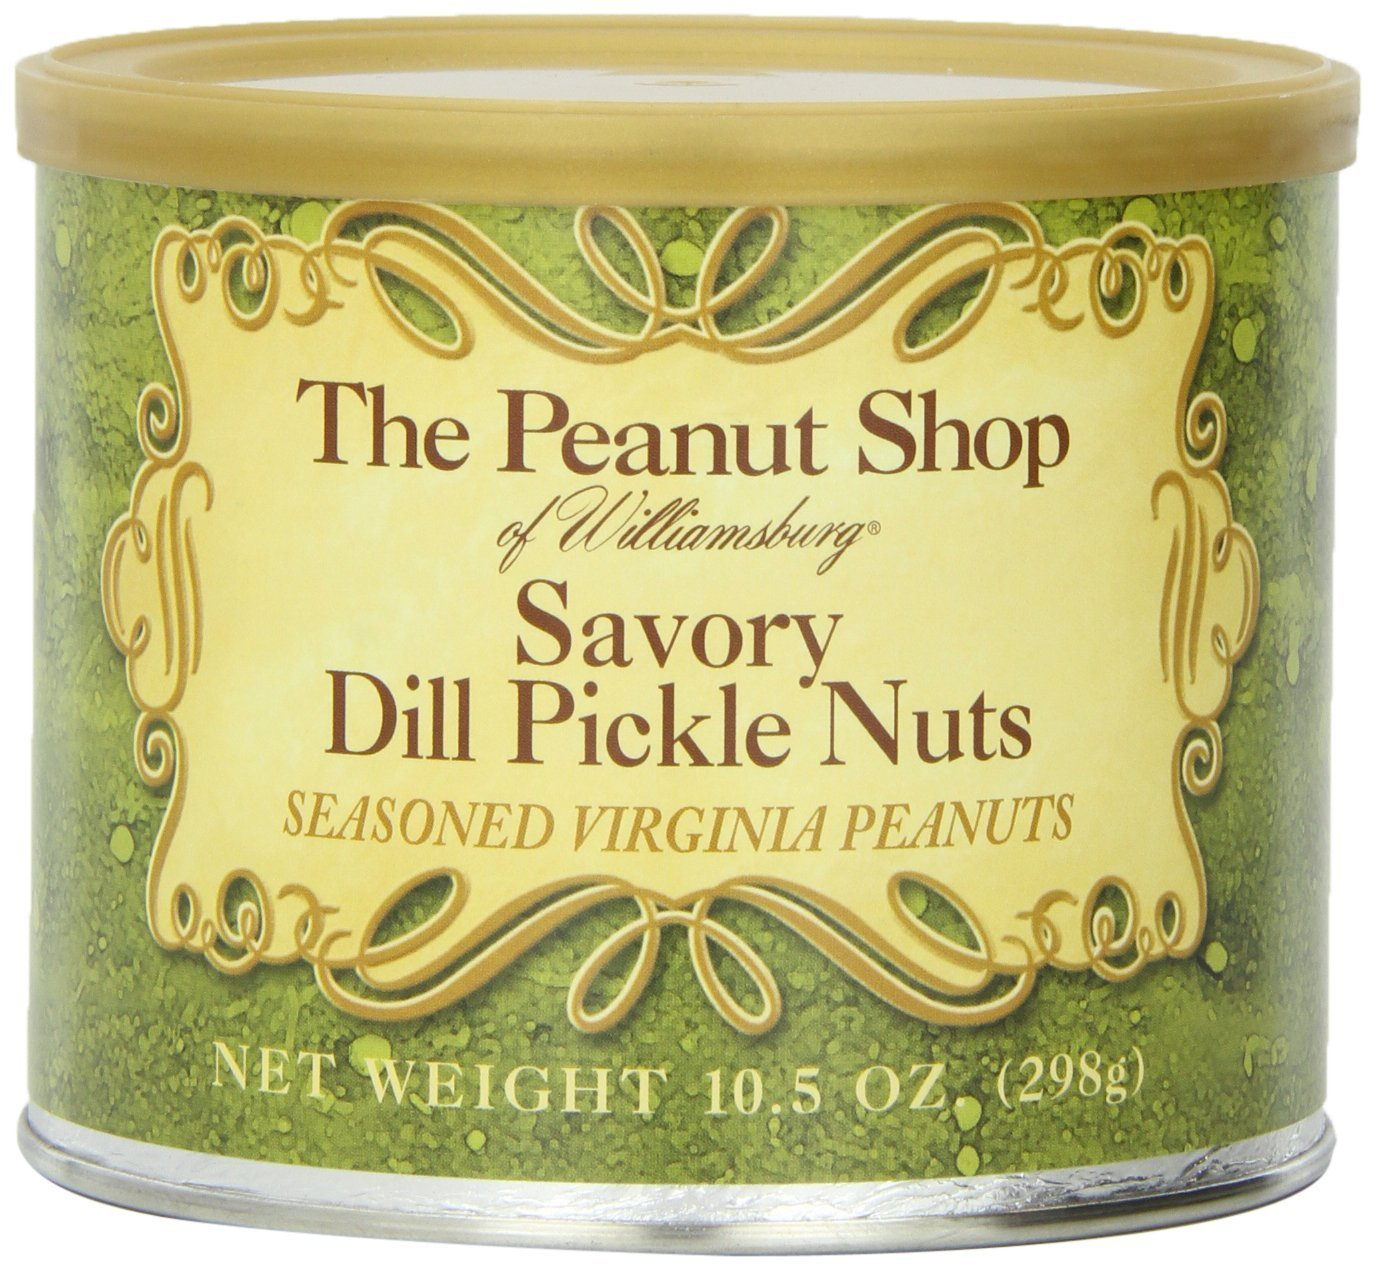 The Peanut Shop of Williamsburg Savory Dill Pickle Nuts, 10.5-Ounce Tin